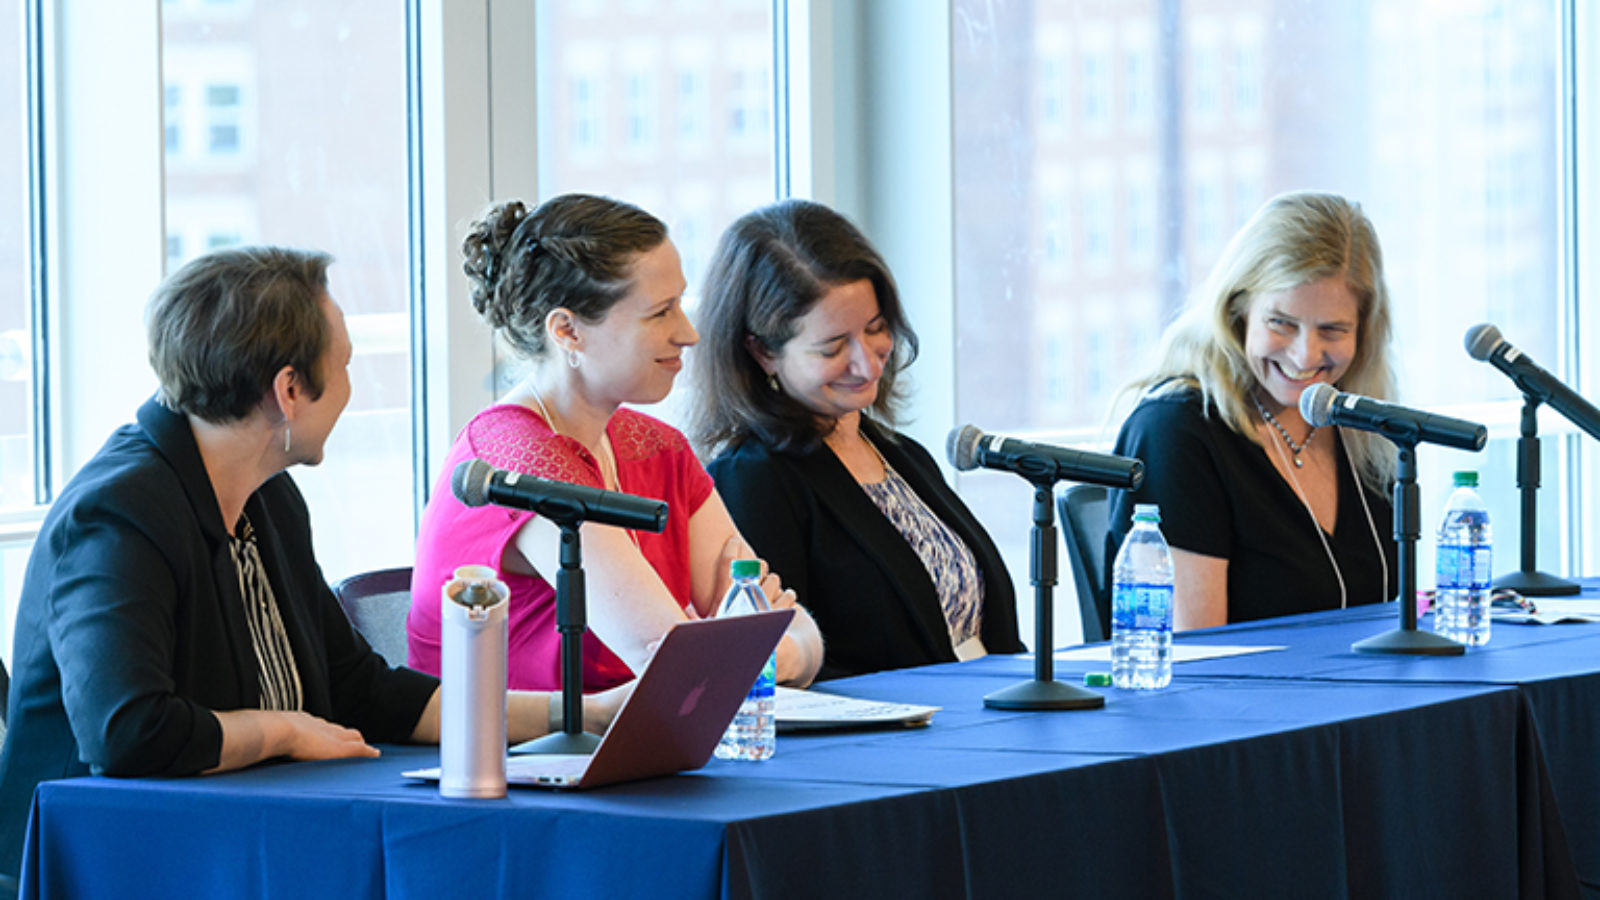 Pearl Sandick, Kathryne Sparks Woodle, Abigail A. Fraeman, Katherine Freese sit at a table with microphones